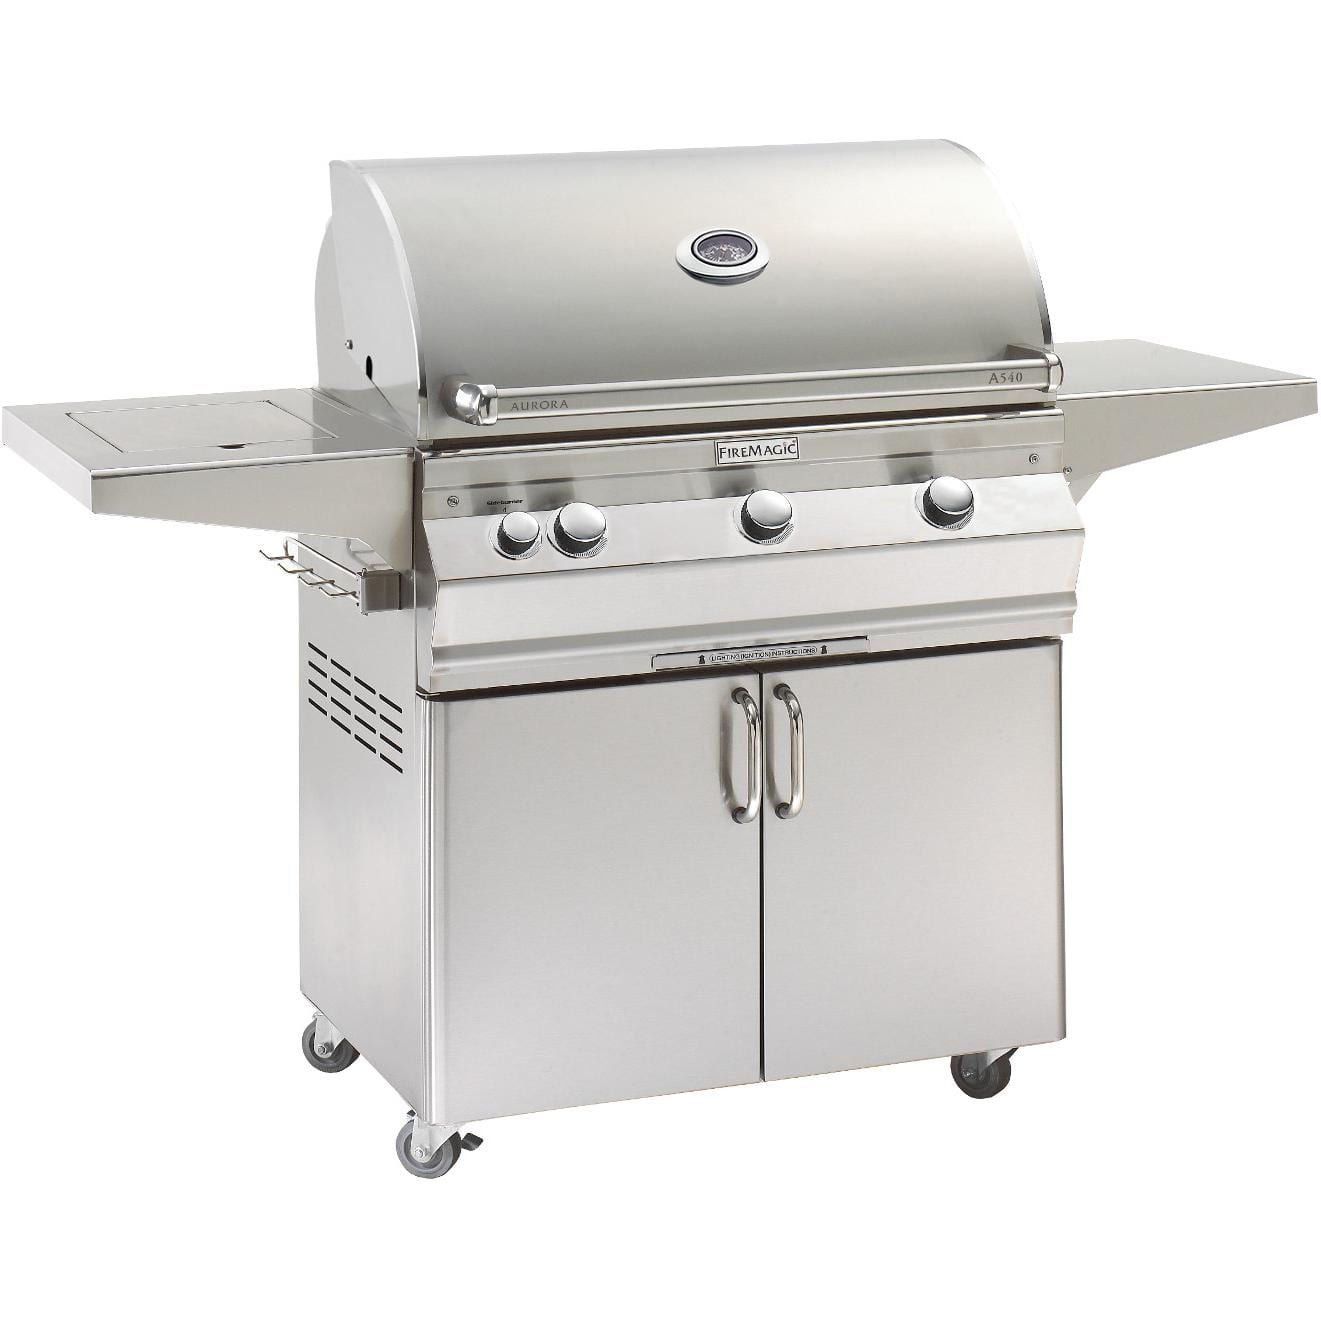 Fire Magic Aurora A540s Natural Gas Grill